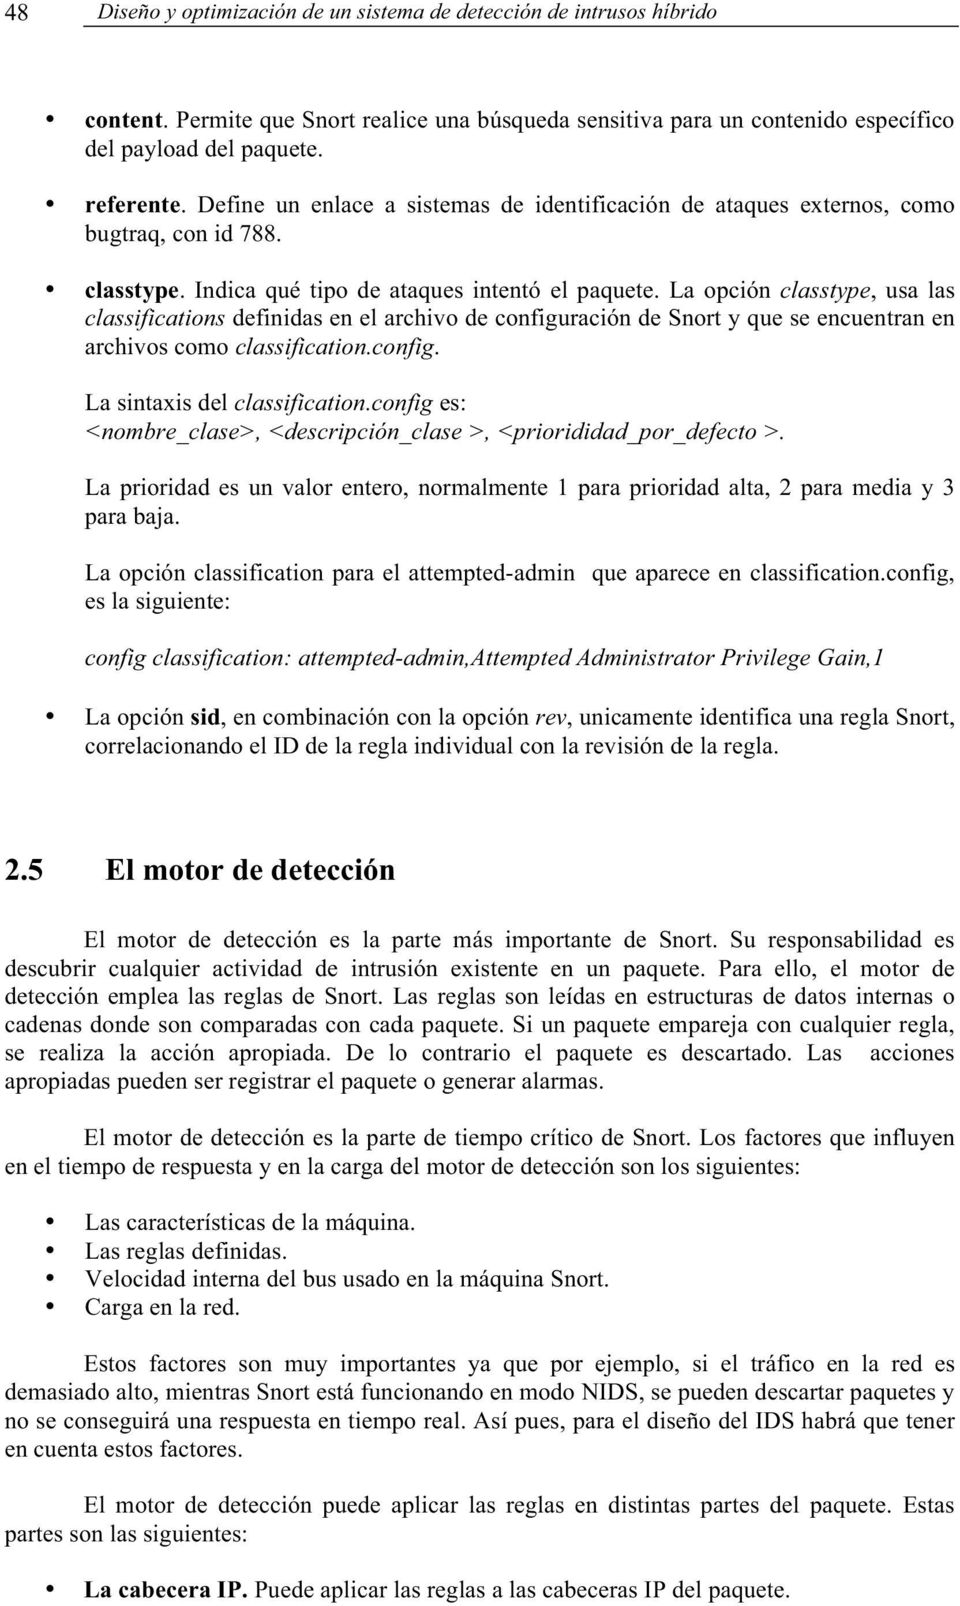 La opción classtype, usa las classifications definidas en el archivo de configuración de Snort y que se encuentran en archivos como classification.config. La sintaxis del classification.